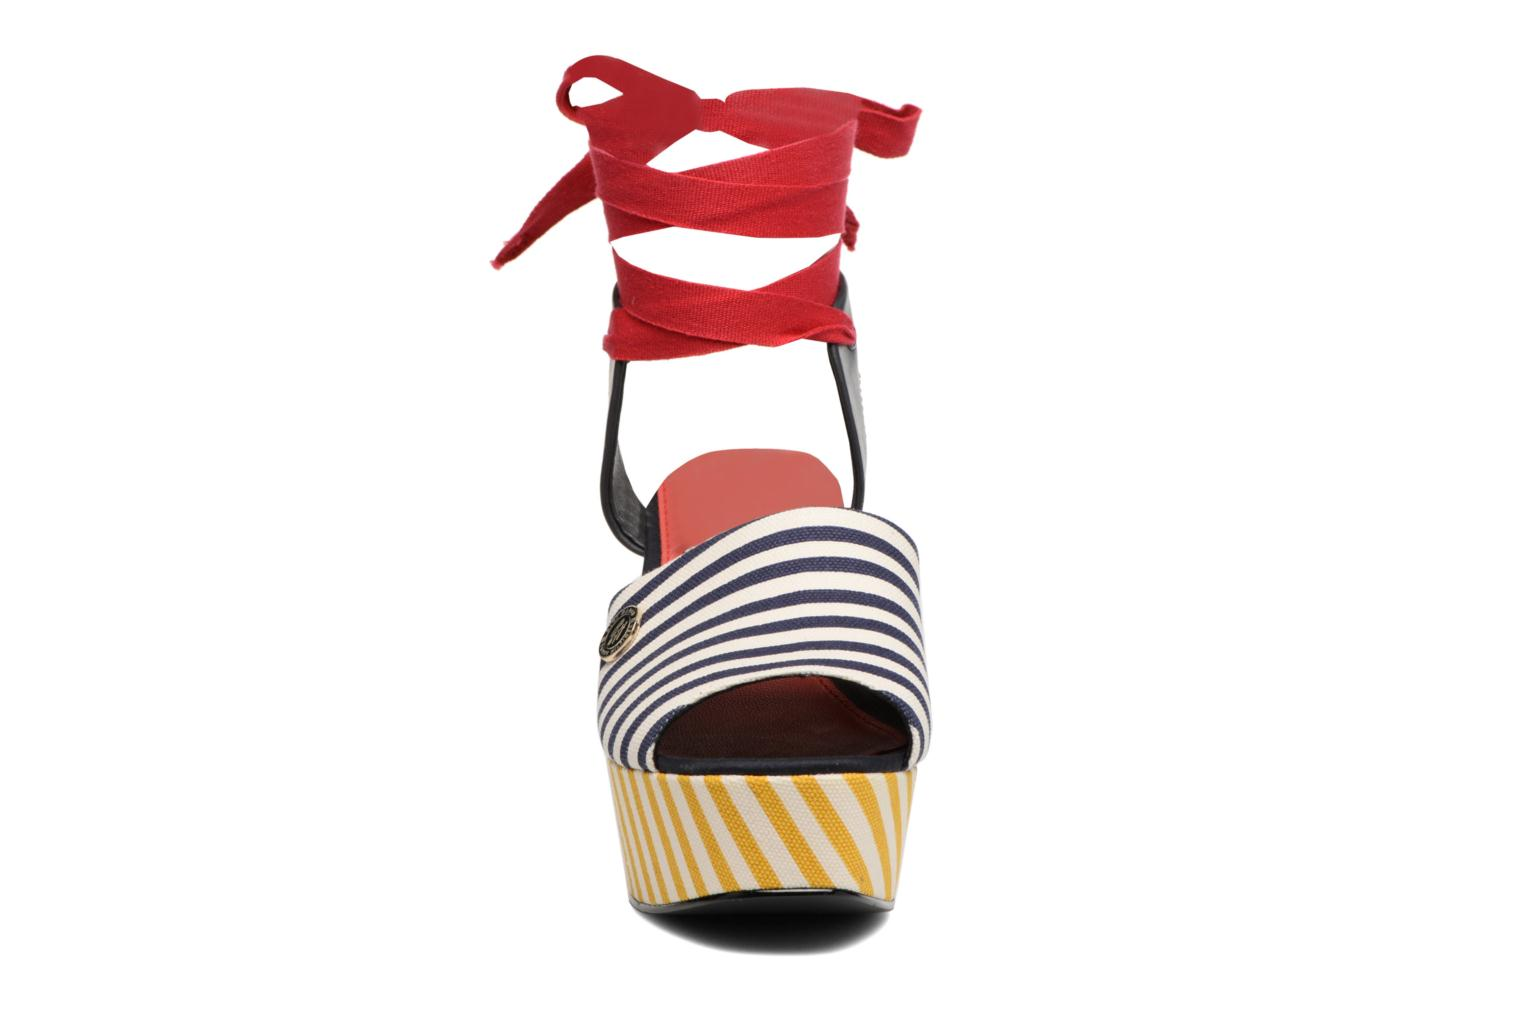 Gigi Hadid Stripey Wedge RWB